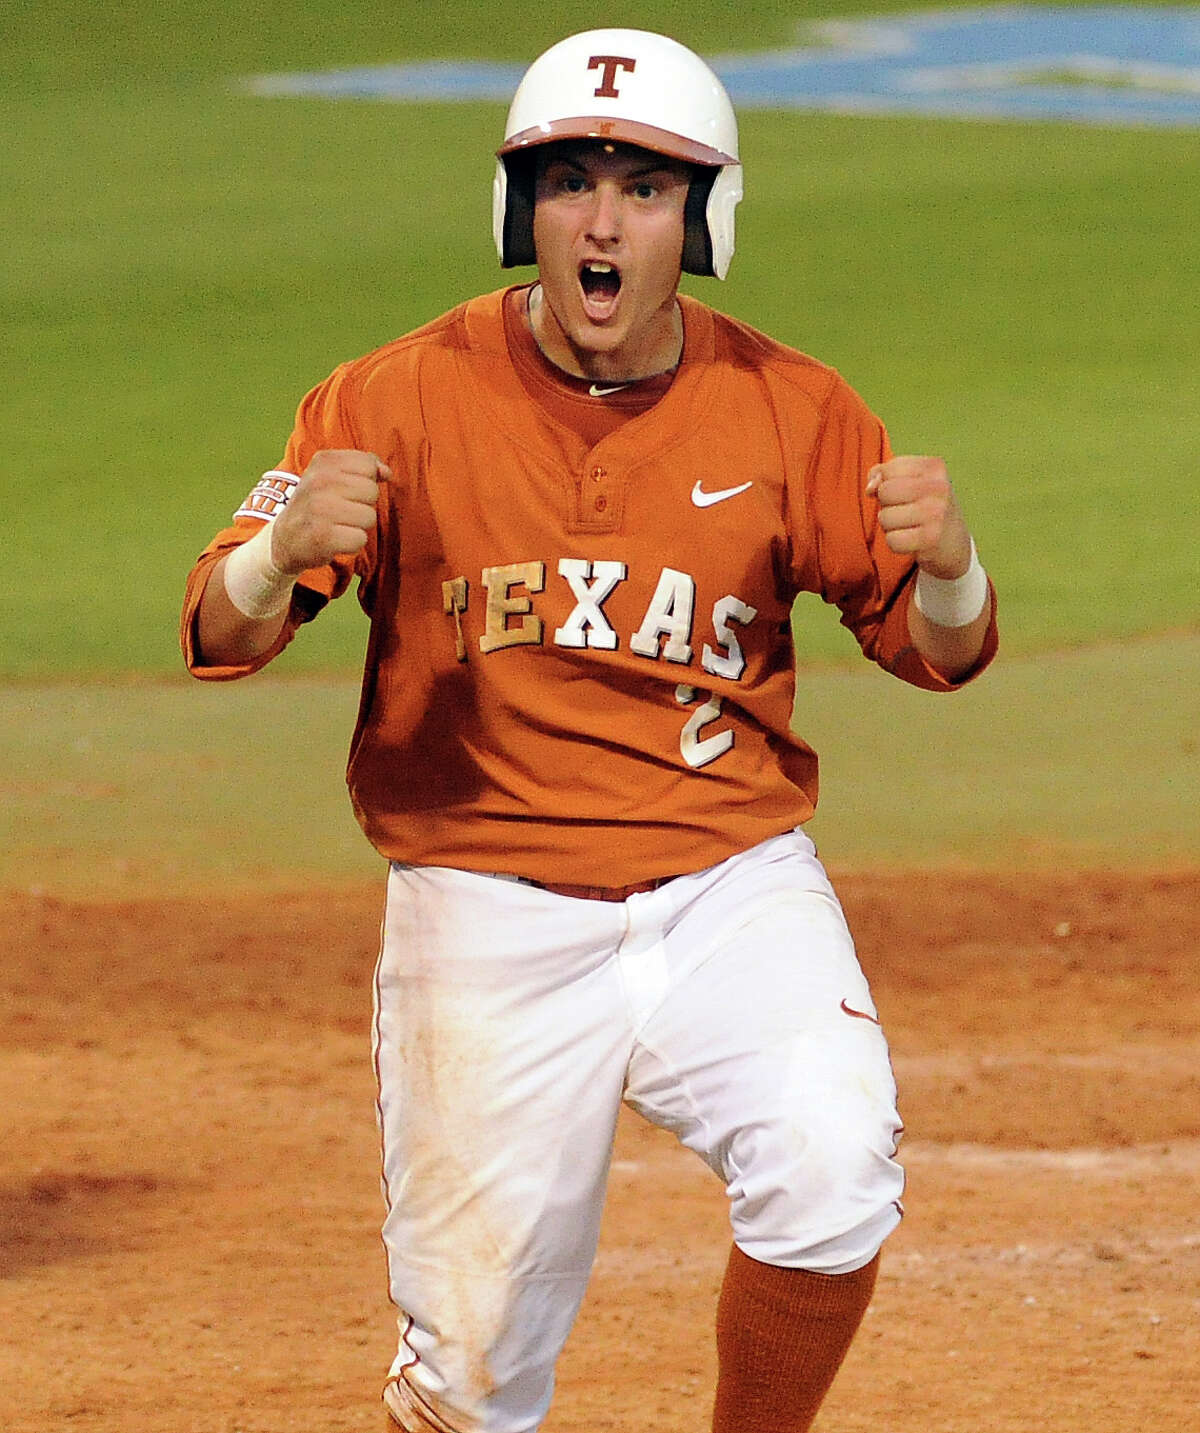 Texas' Mark Payton reacts after scoring a run during the seventh inning of an NCAA baseball regional game against Texas A&M, Monday, June 2, 2014, at Reckling Park in Houston.